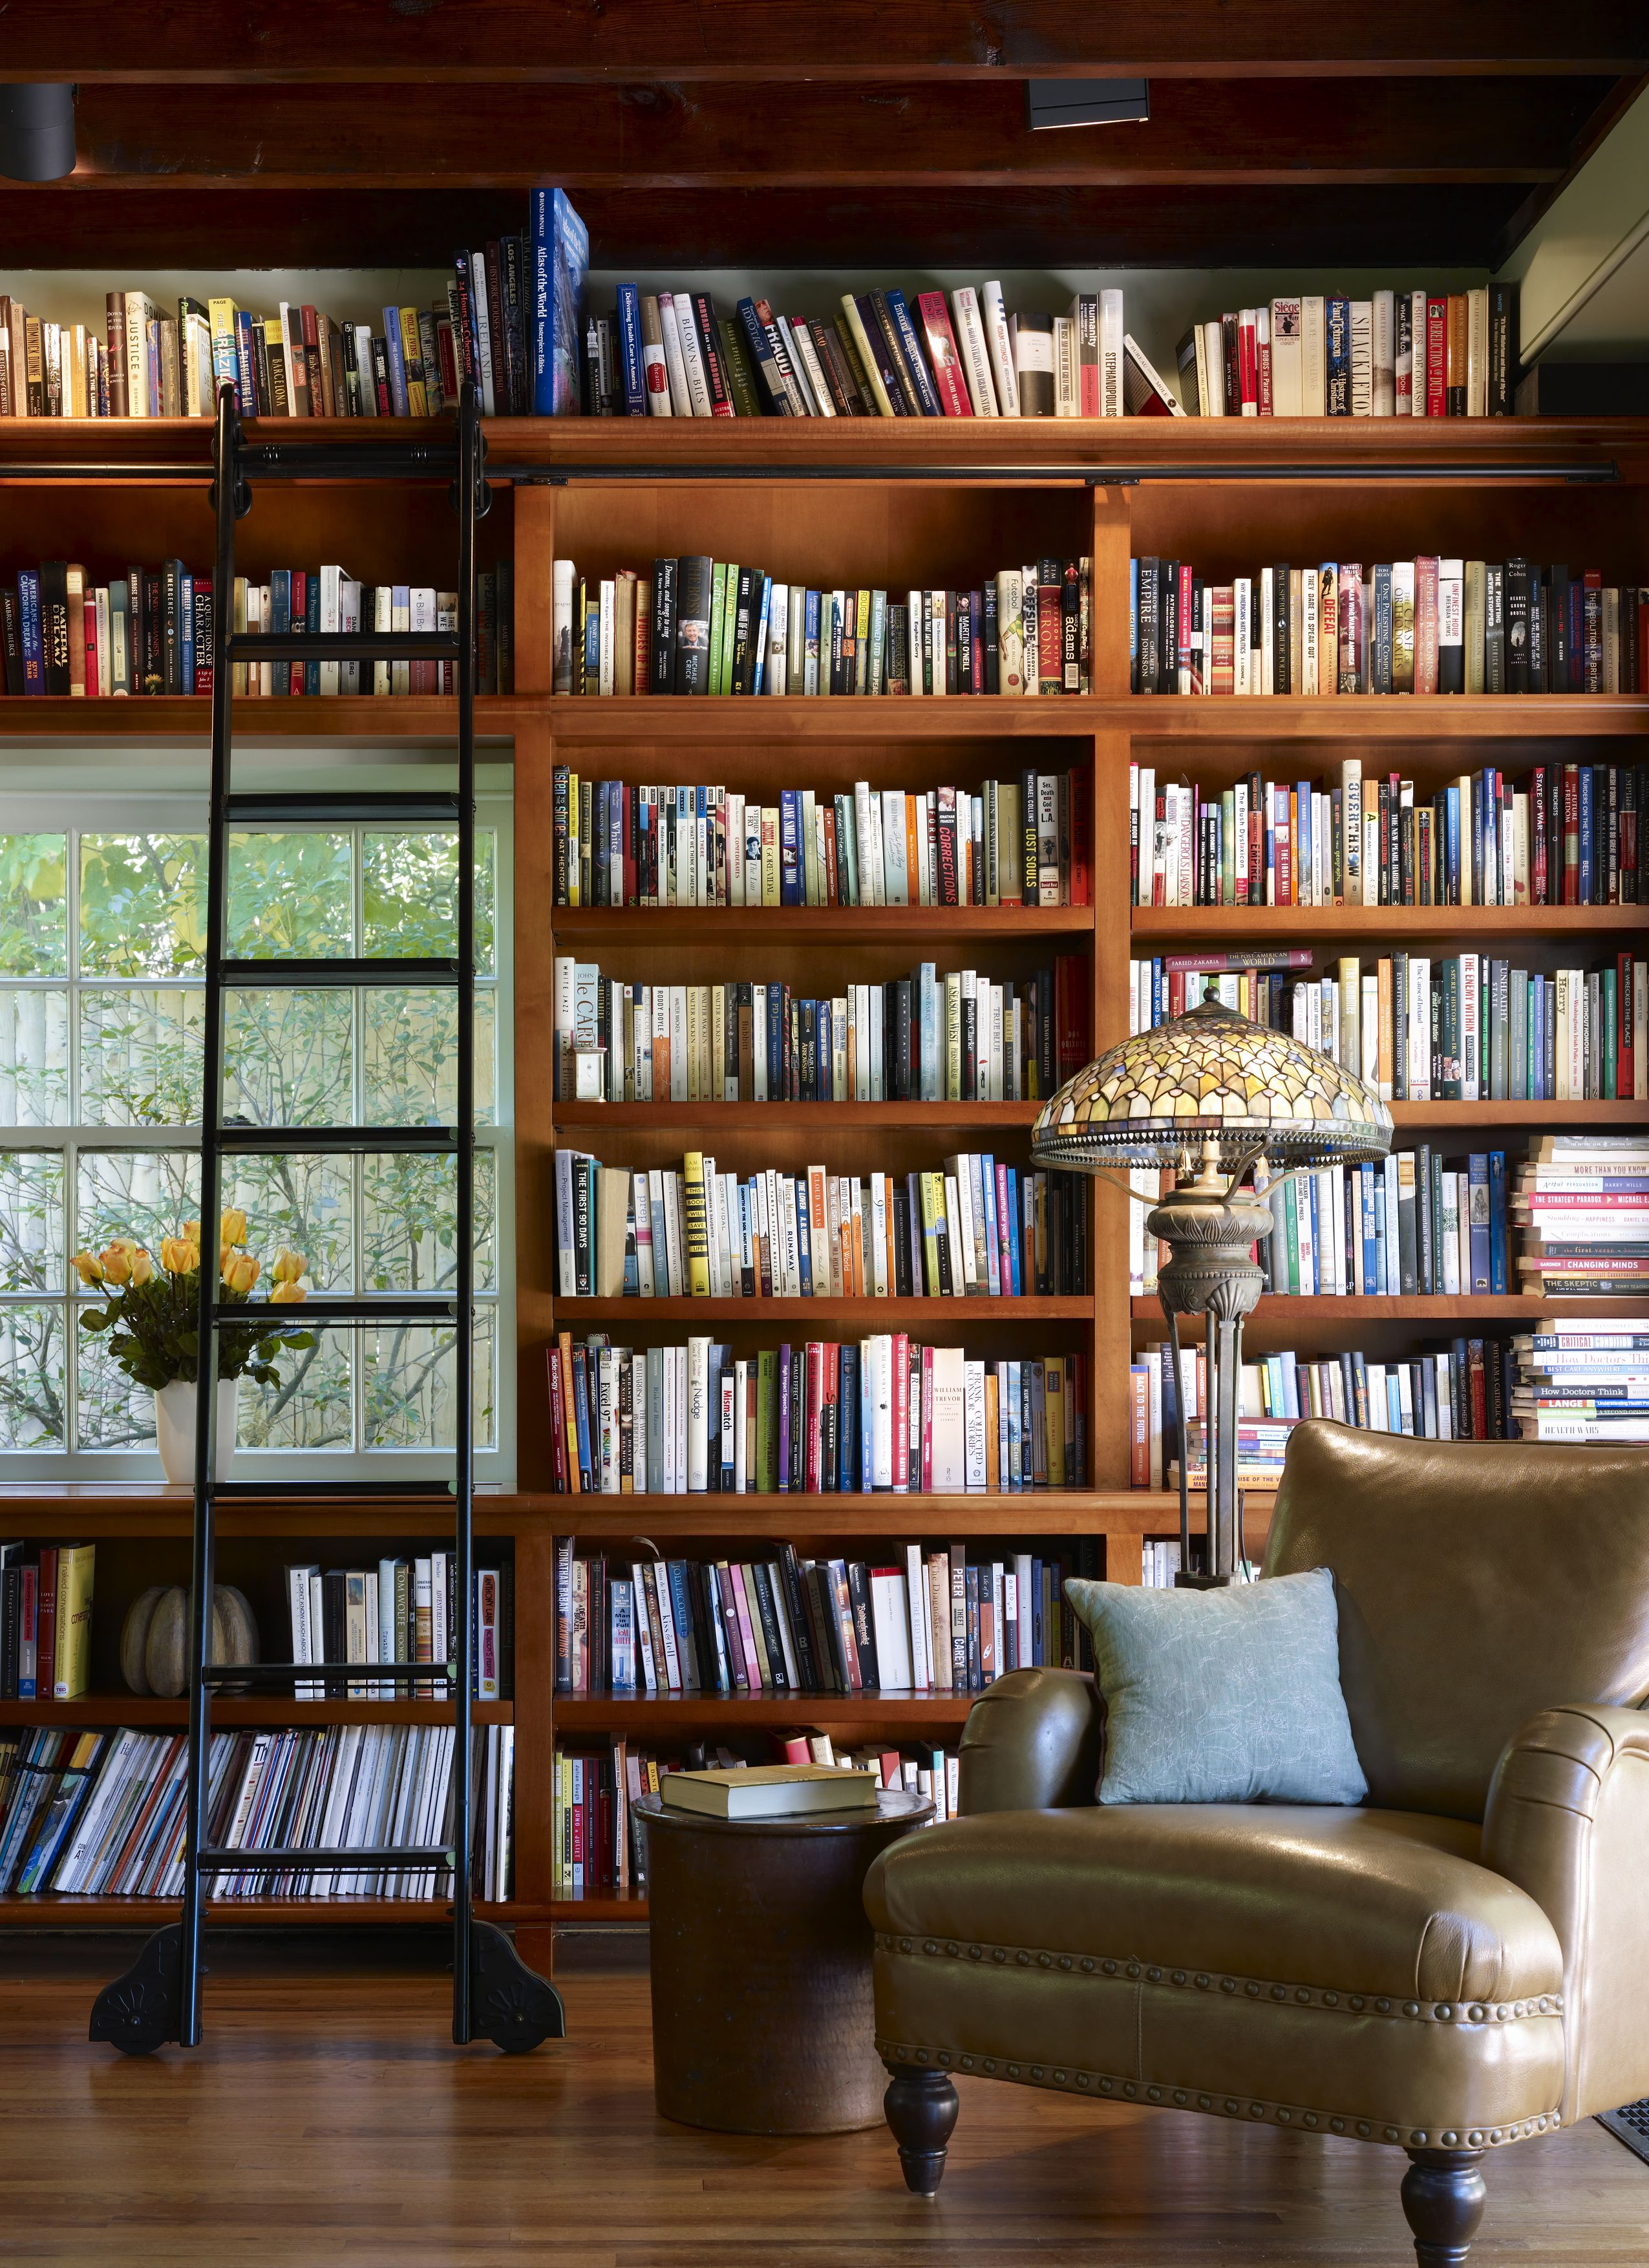 Home Renovation By Krieger Associates Architects In Chestnut Hill Philadelphia Photograph By Jeffrey T Cozy Home Library Home Library Design Home Libraries